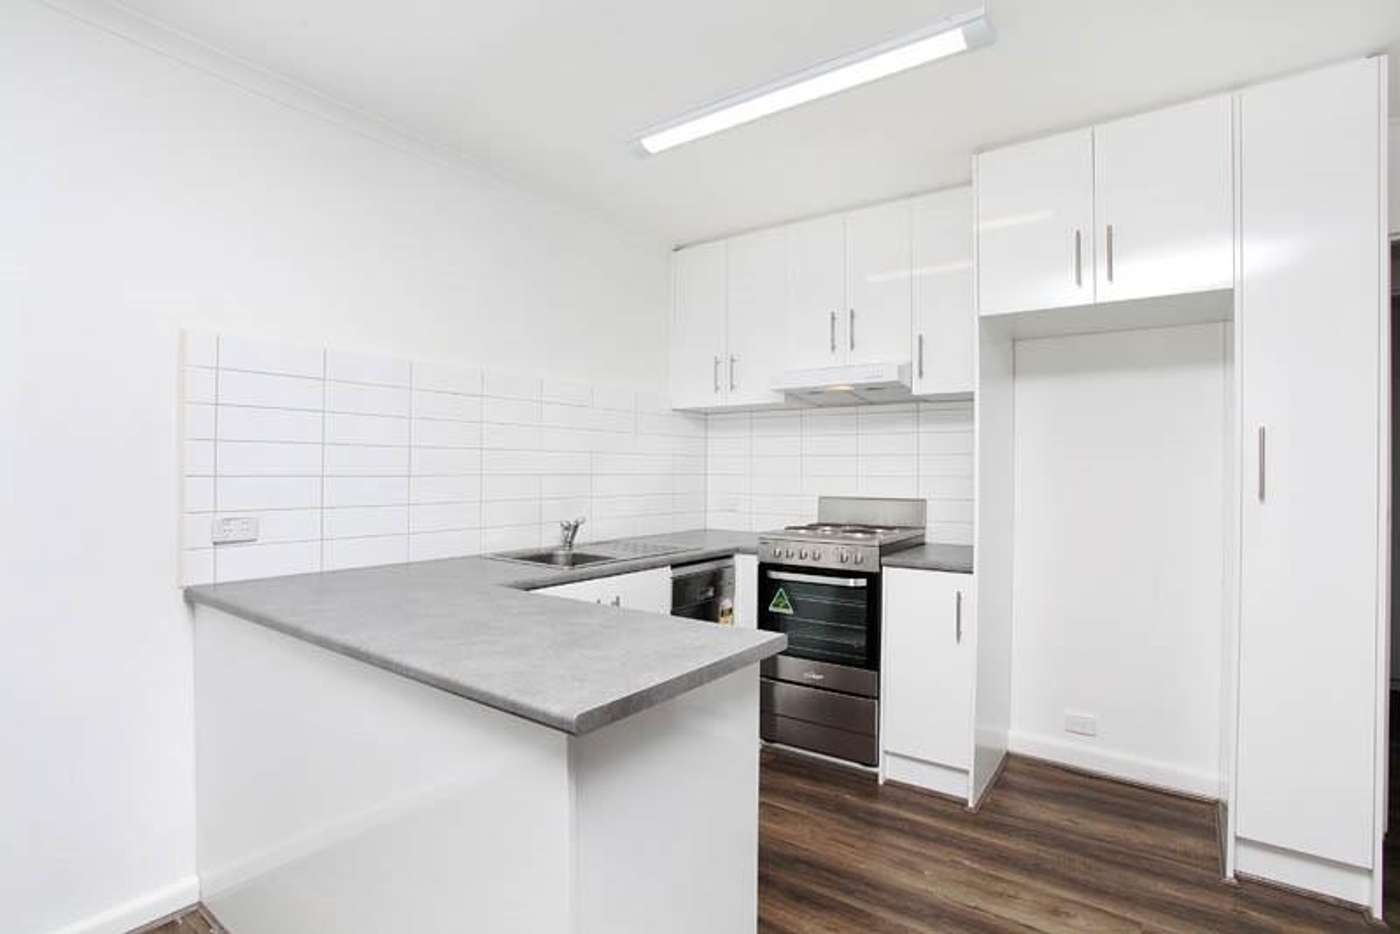 Main view of Homely apartment listing, 11/5 Wattle Street, West Footscray VIC 3012